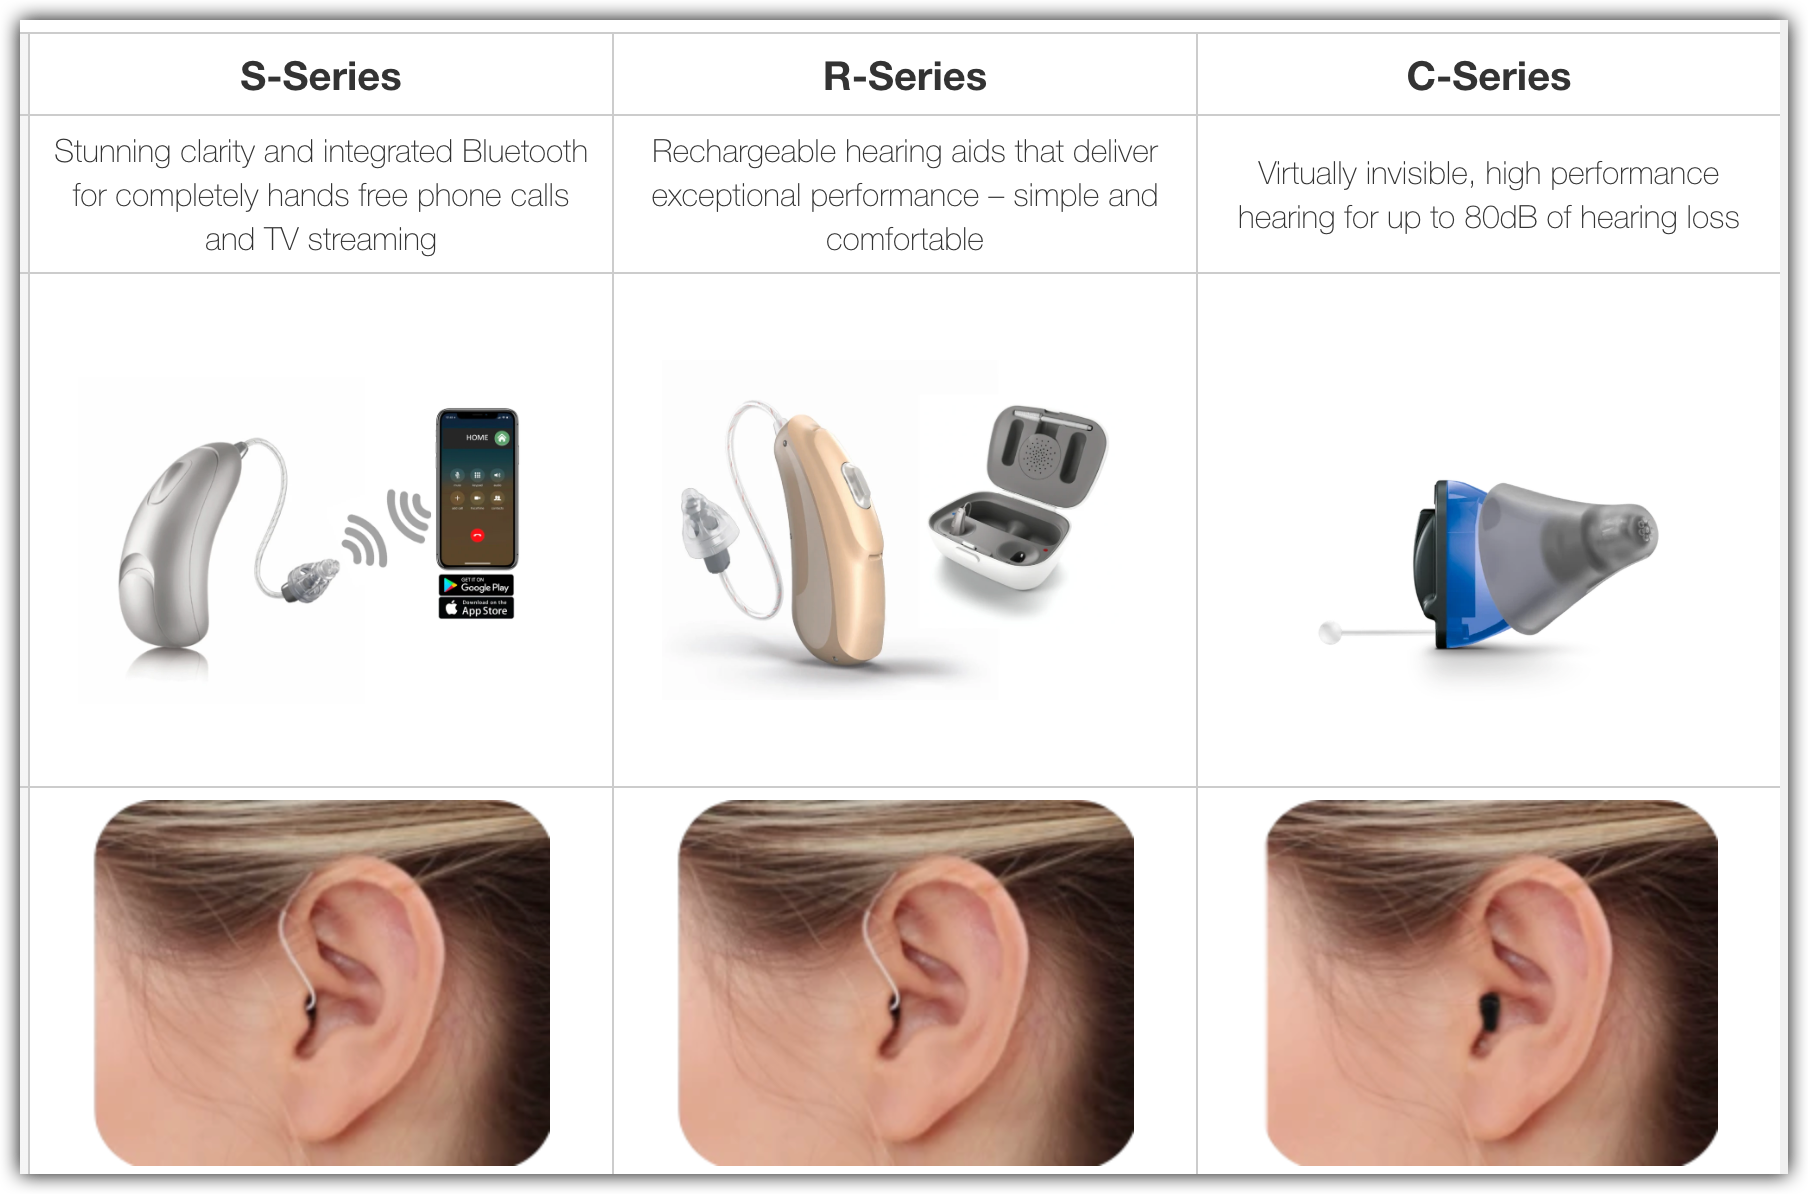 embrace hearing aid models s series, c series, and r series chart comparison